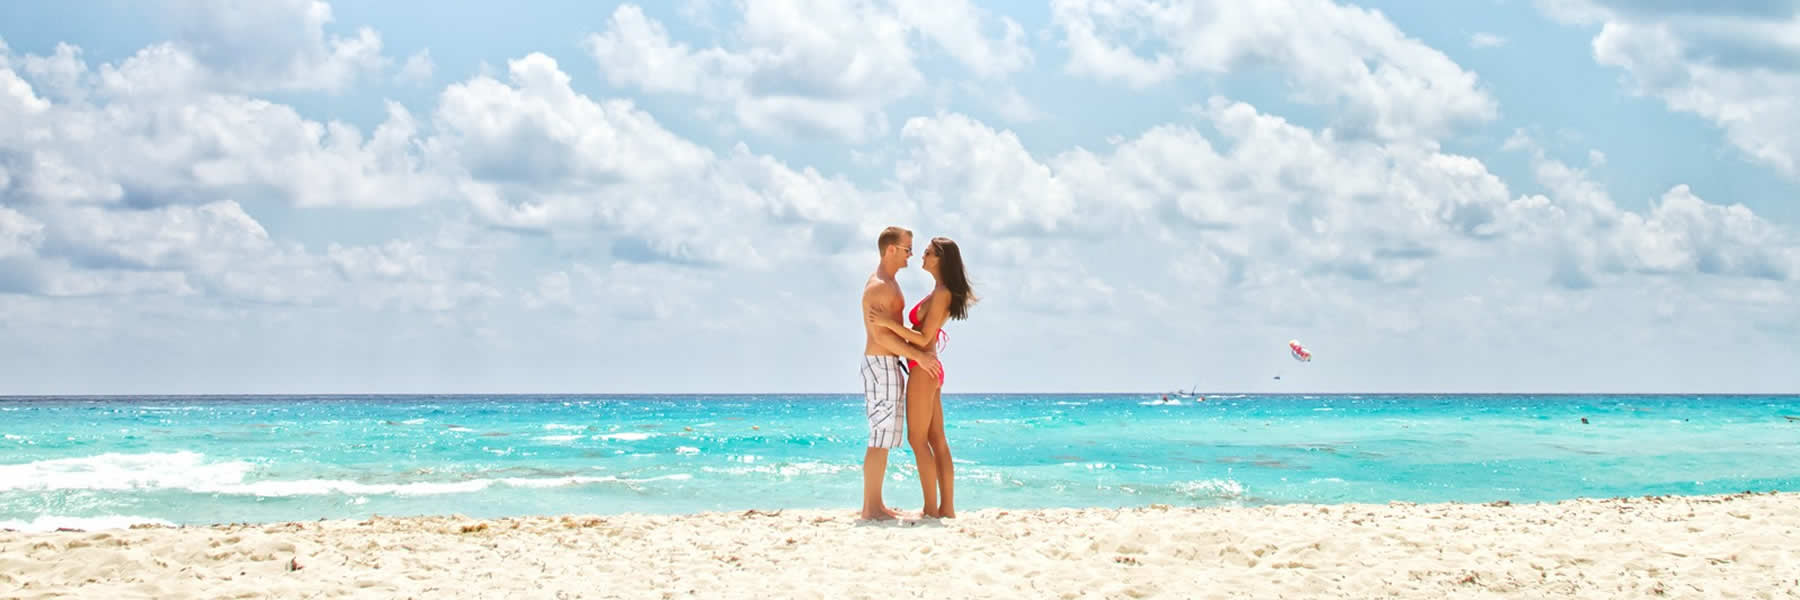 Get help from Mode Travel Agency when planning your destination wedding.